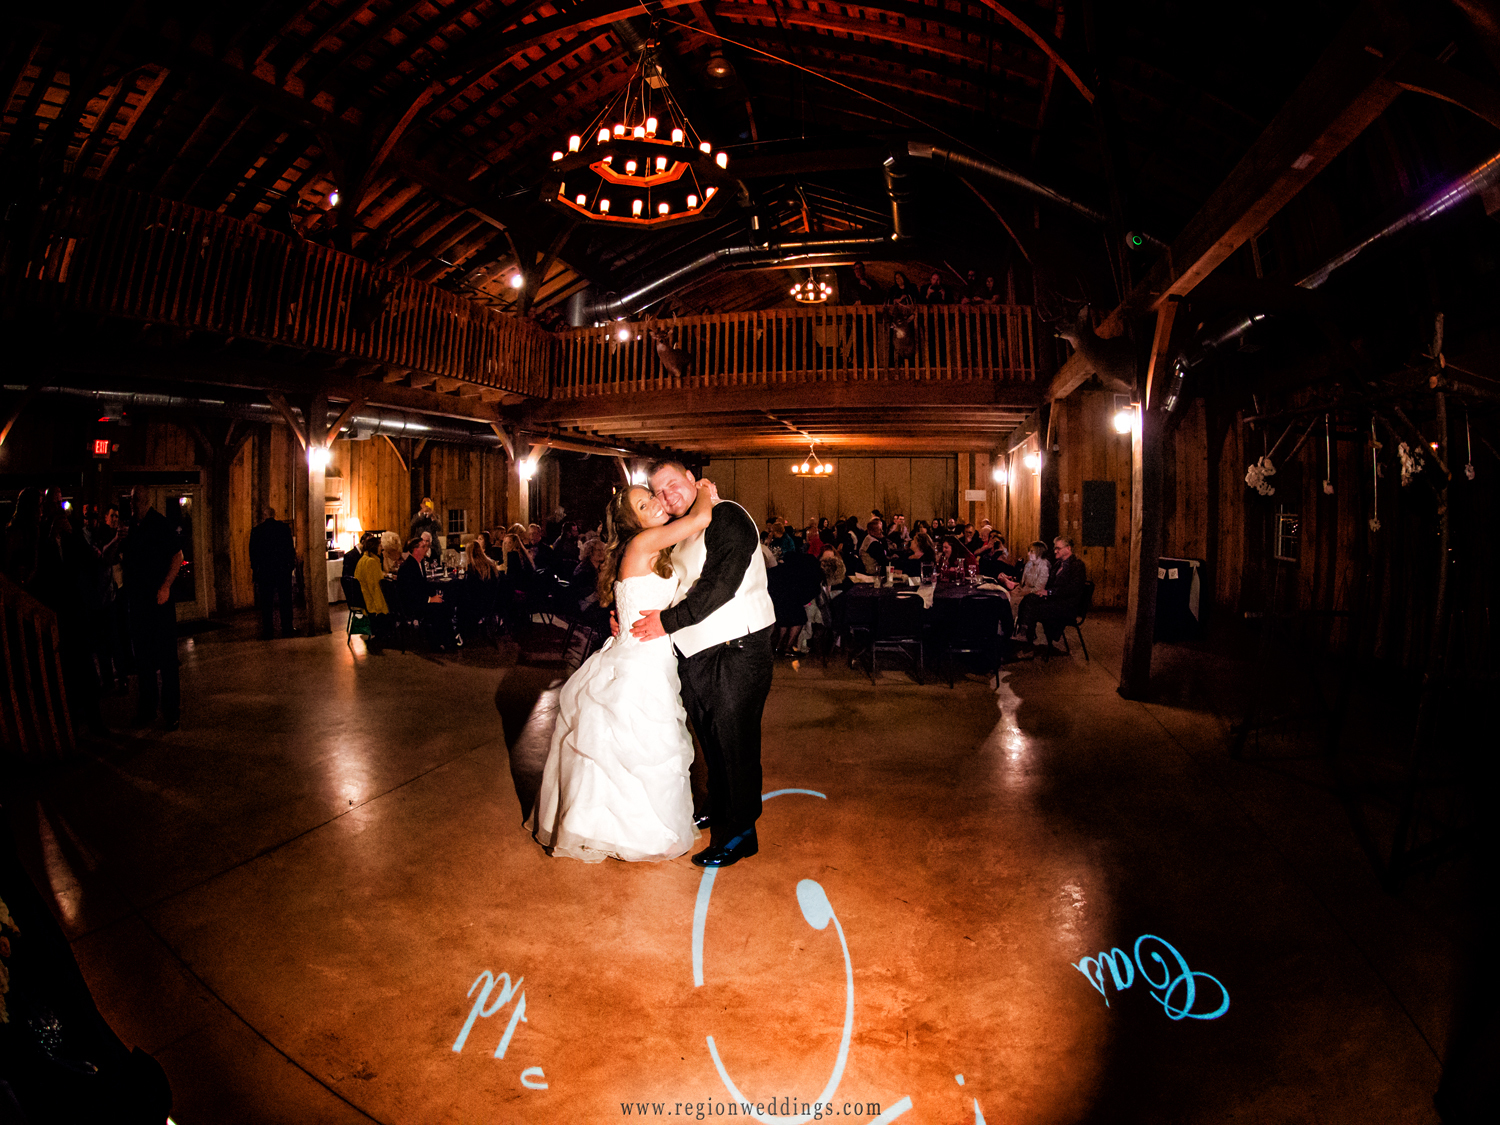 The bride and groom are the center of attention during their first dance at County Line Orchard.